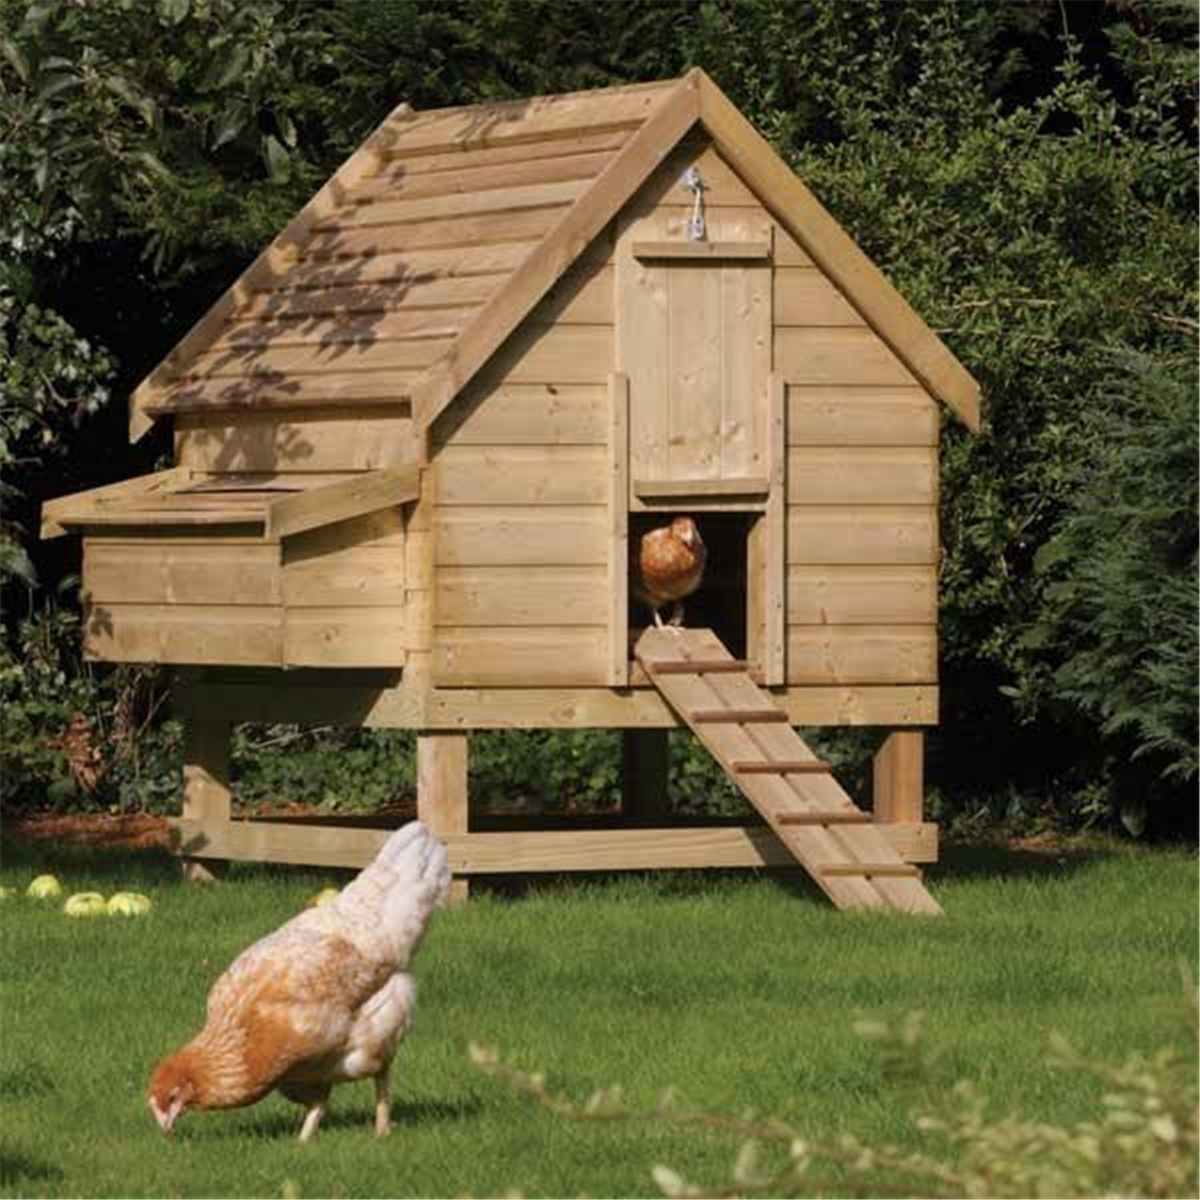 Pressure Treated Chicken Coop Houses 6 Chickens Shedsfirst